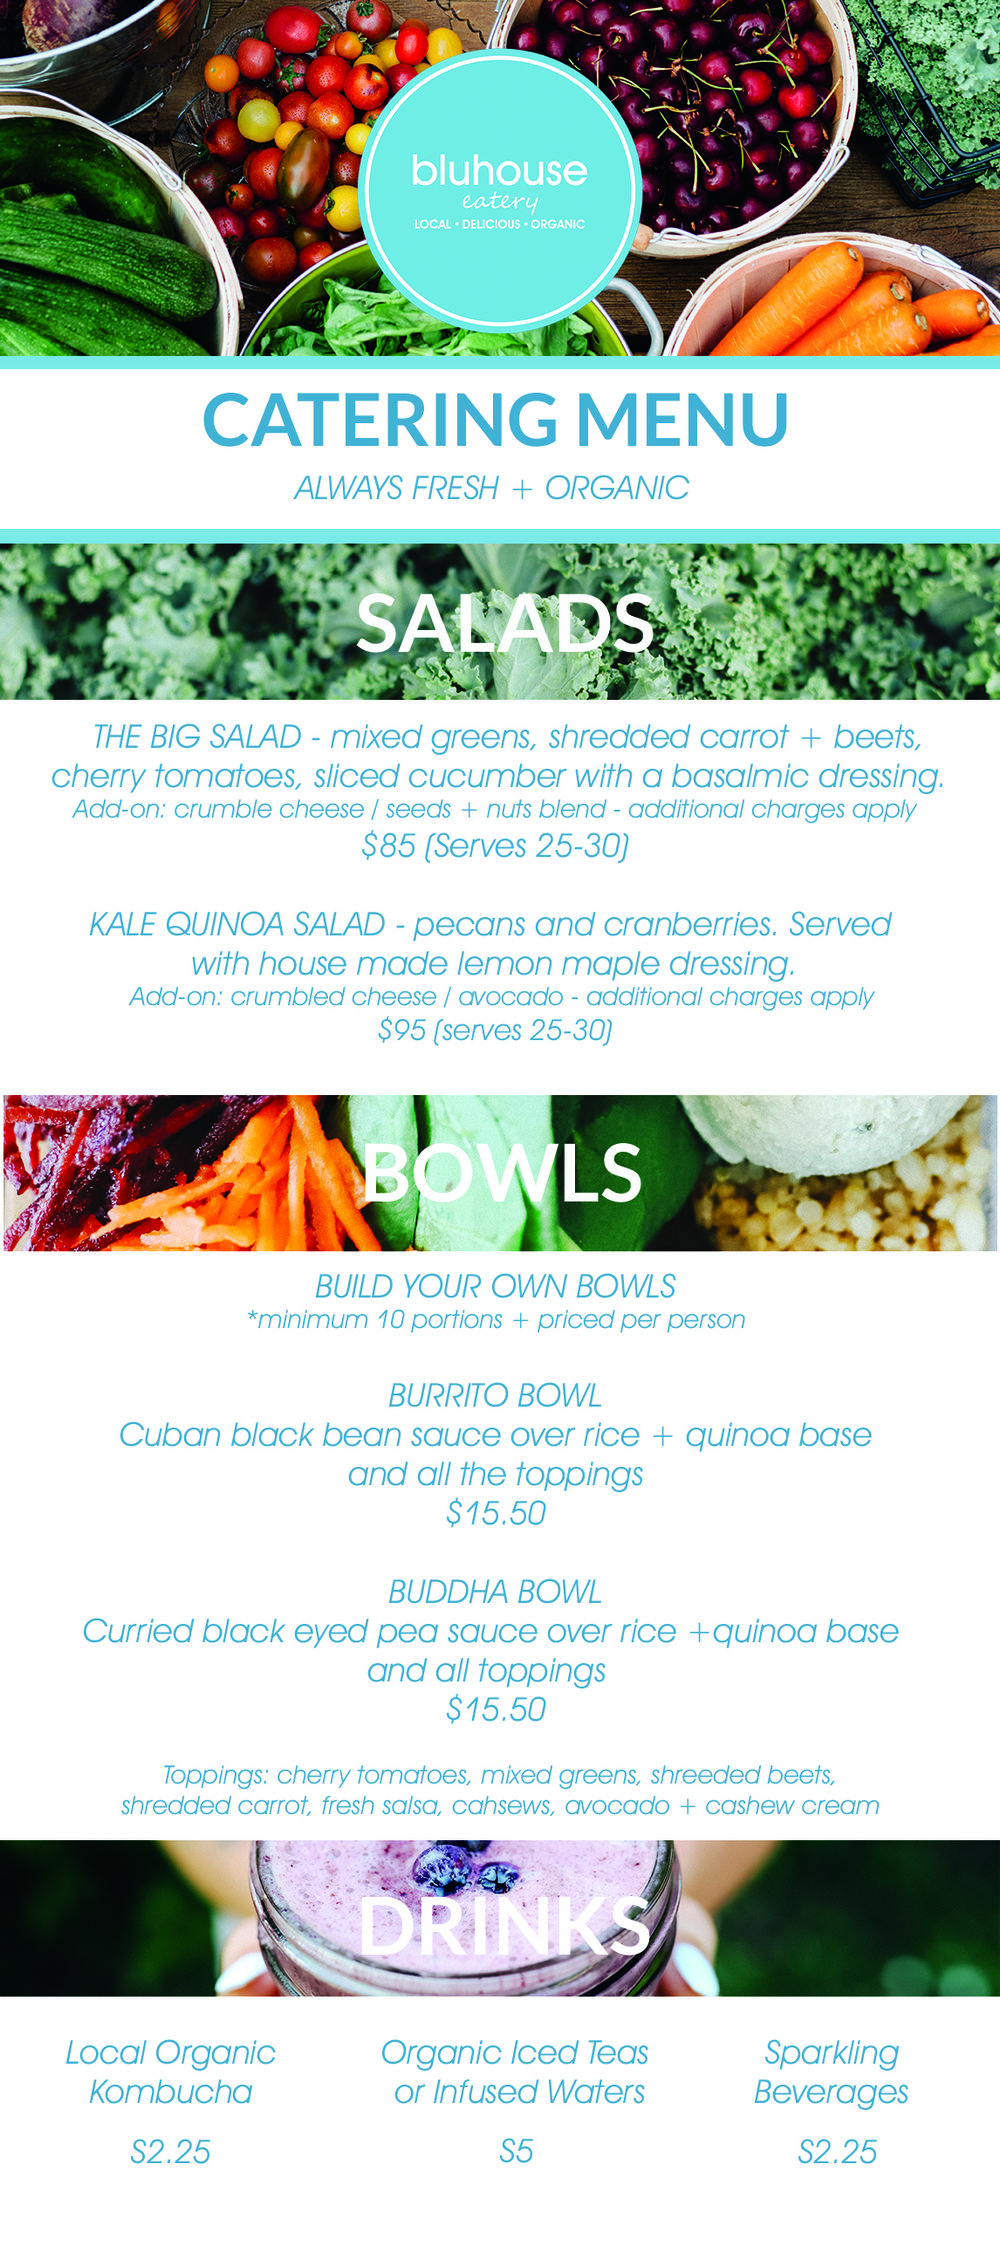 Bluhouse Catering Menu - Front.jpg